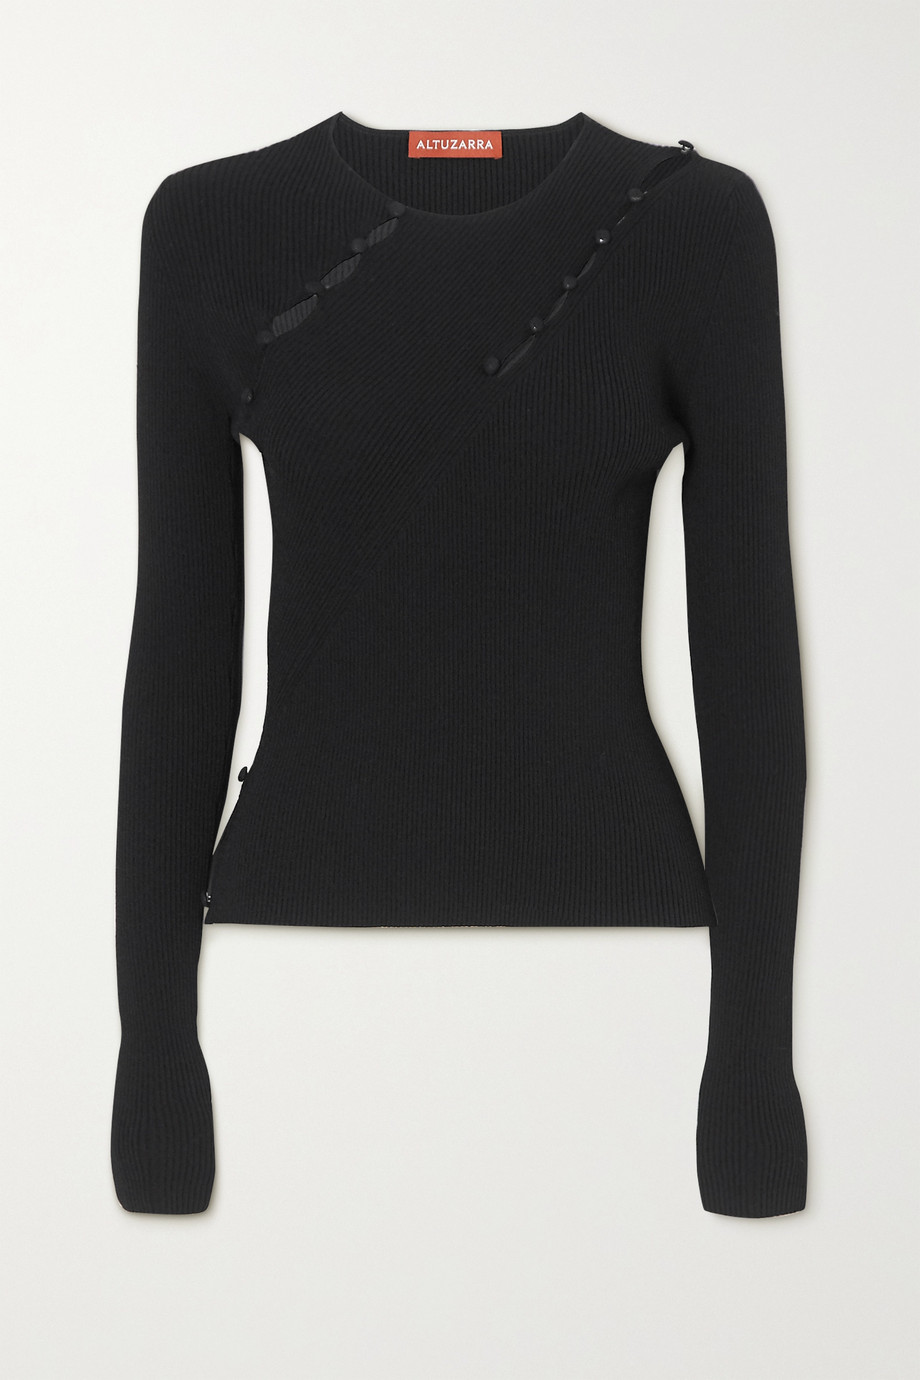 Altuzarra Margie button-detailed cutout ribbed-knit top